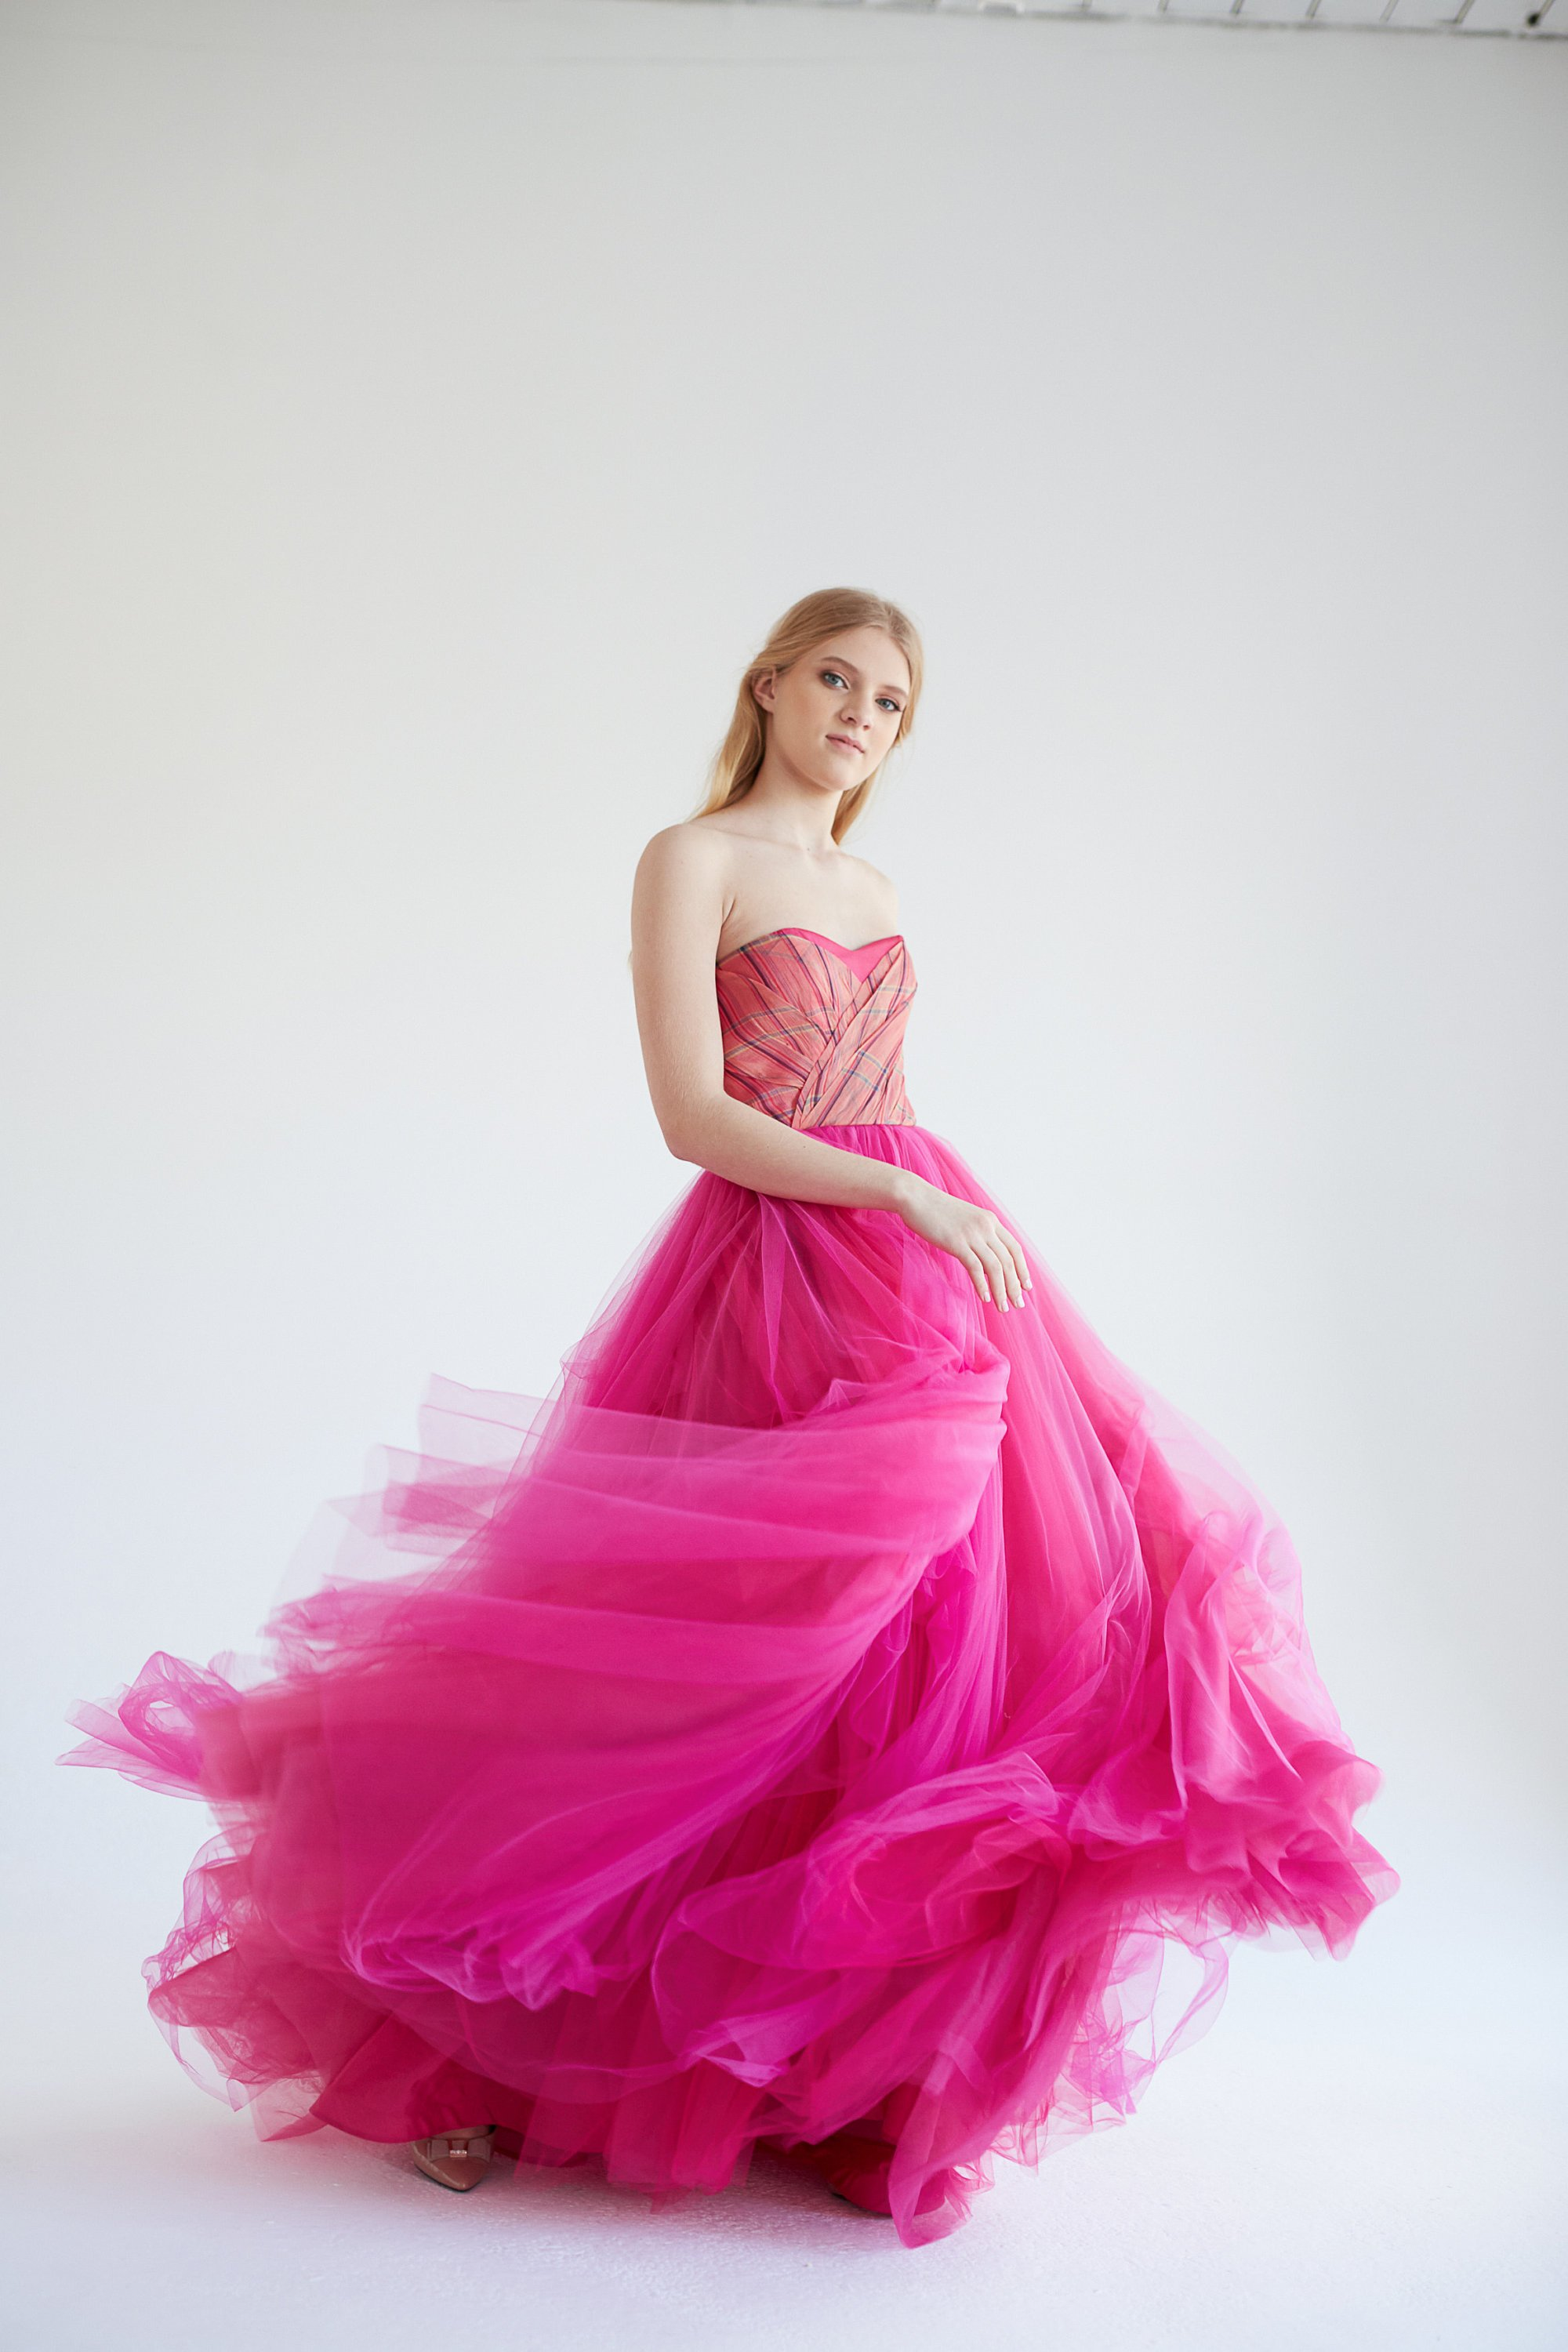 Raspberry evening dress, tulle dress, bridesmaid dress, prom dress, long evening gown, ball.jpg